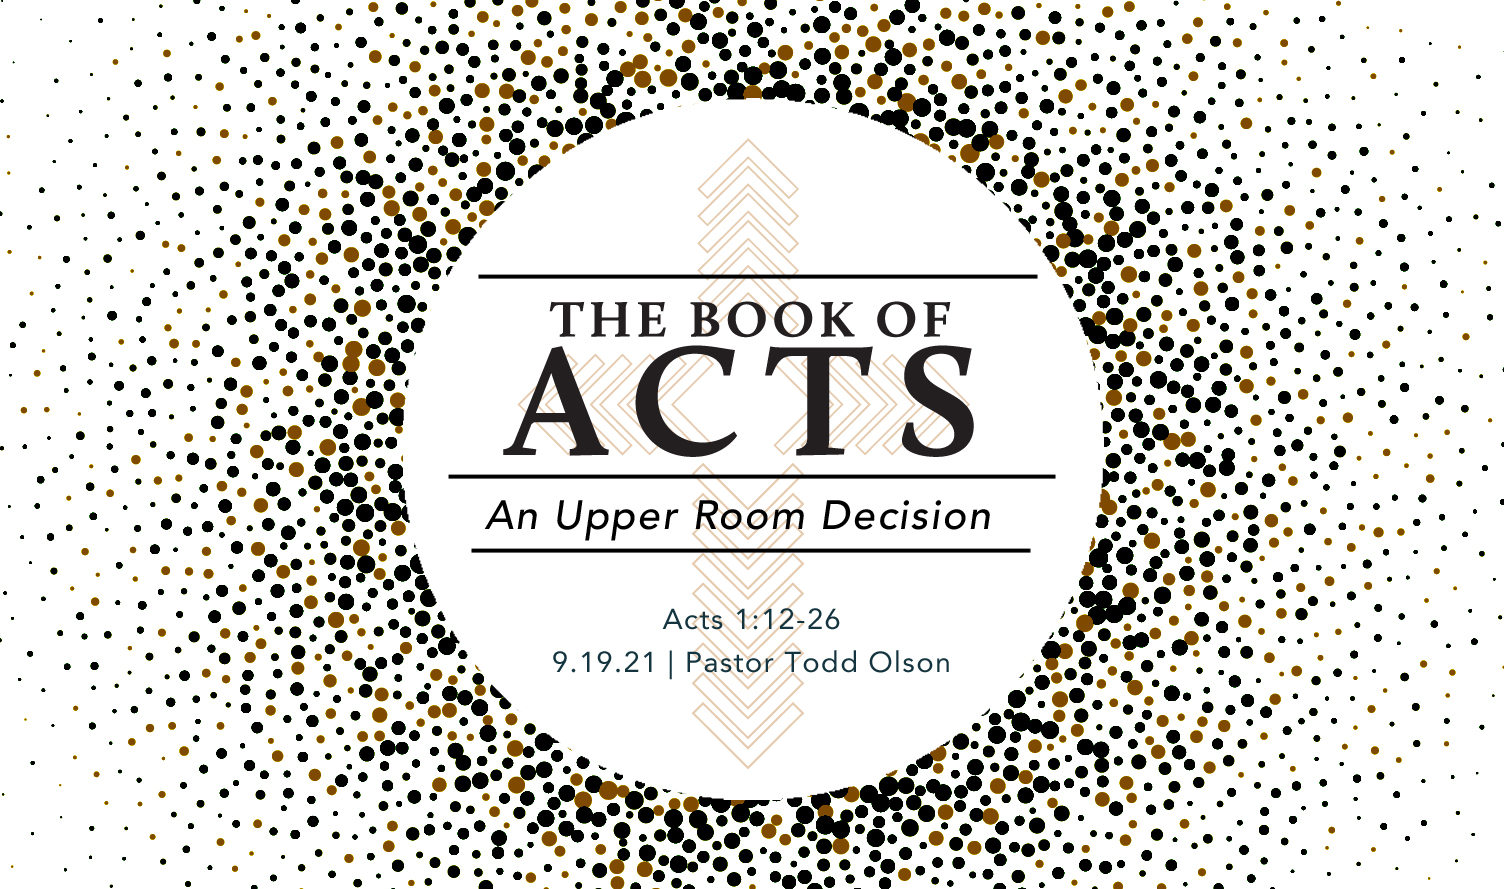 An Upper Room Decision